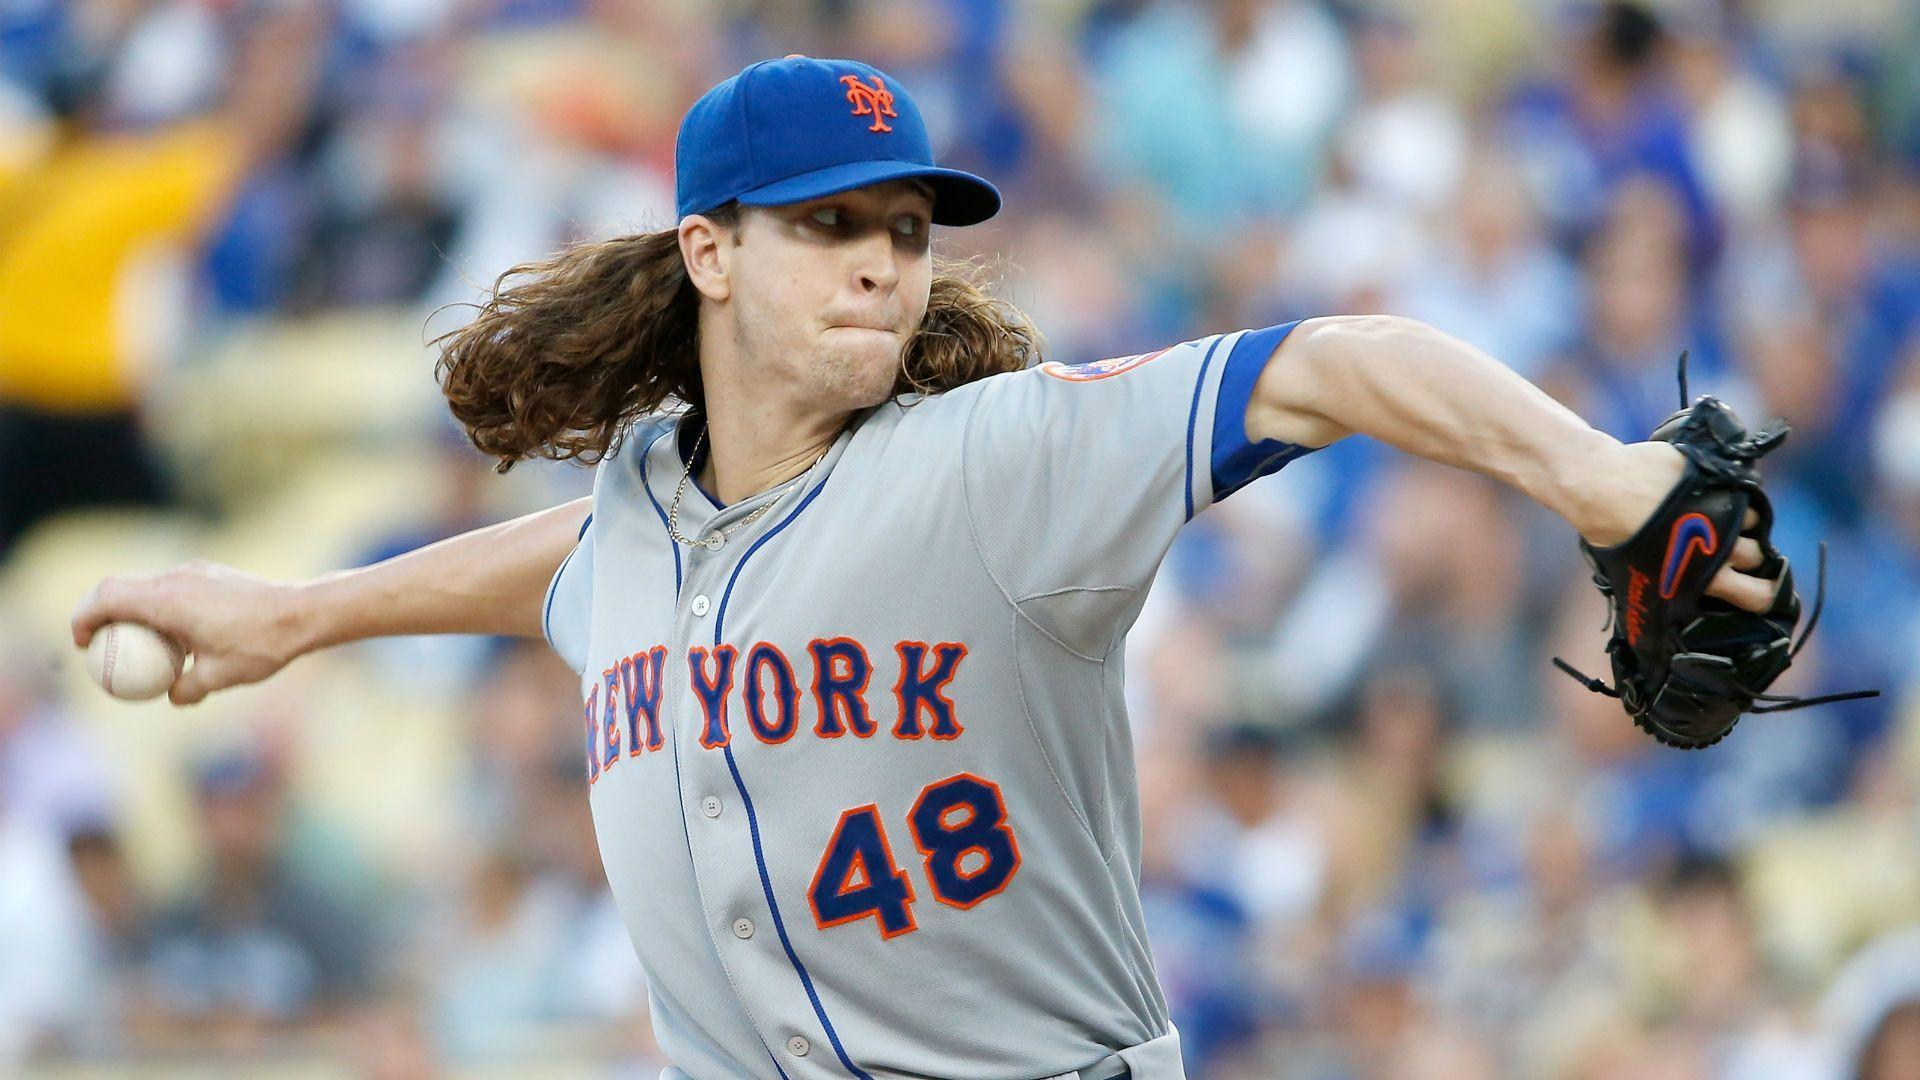 Jacob deGrom refuses to sign Mets' 2016 contract, will only make